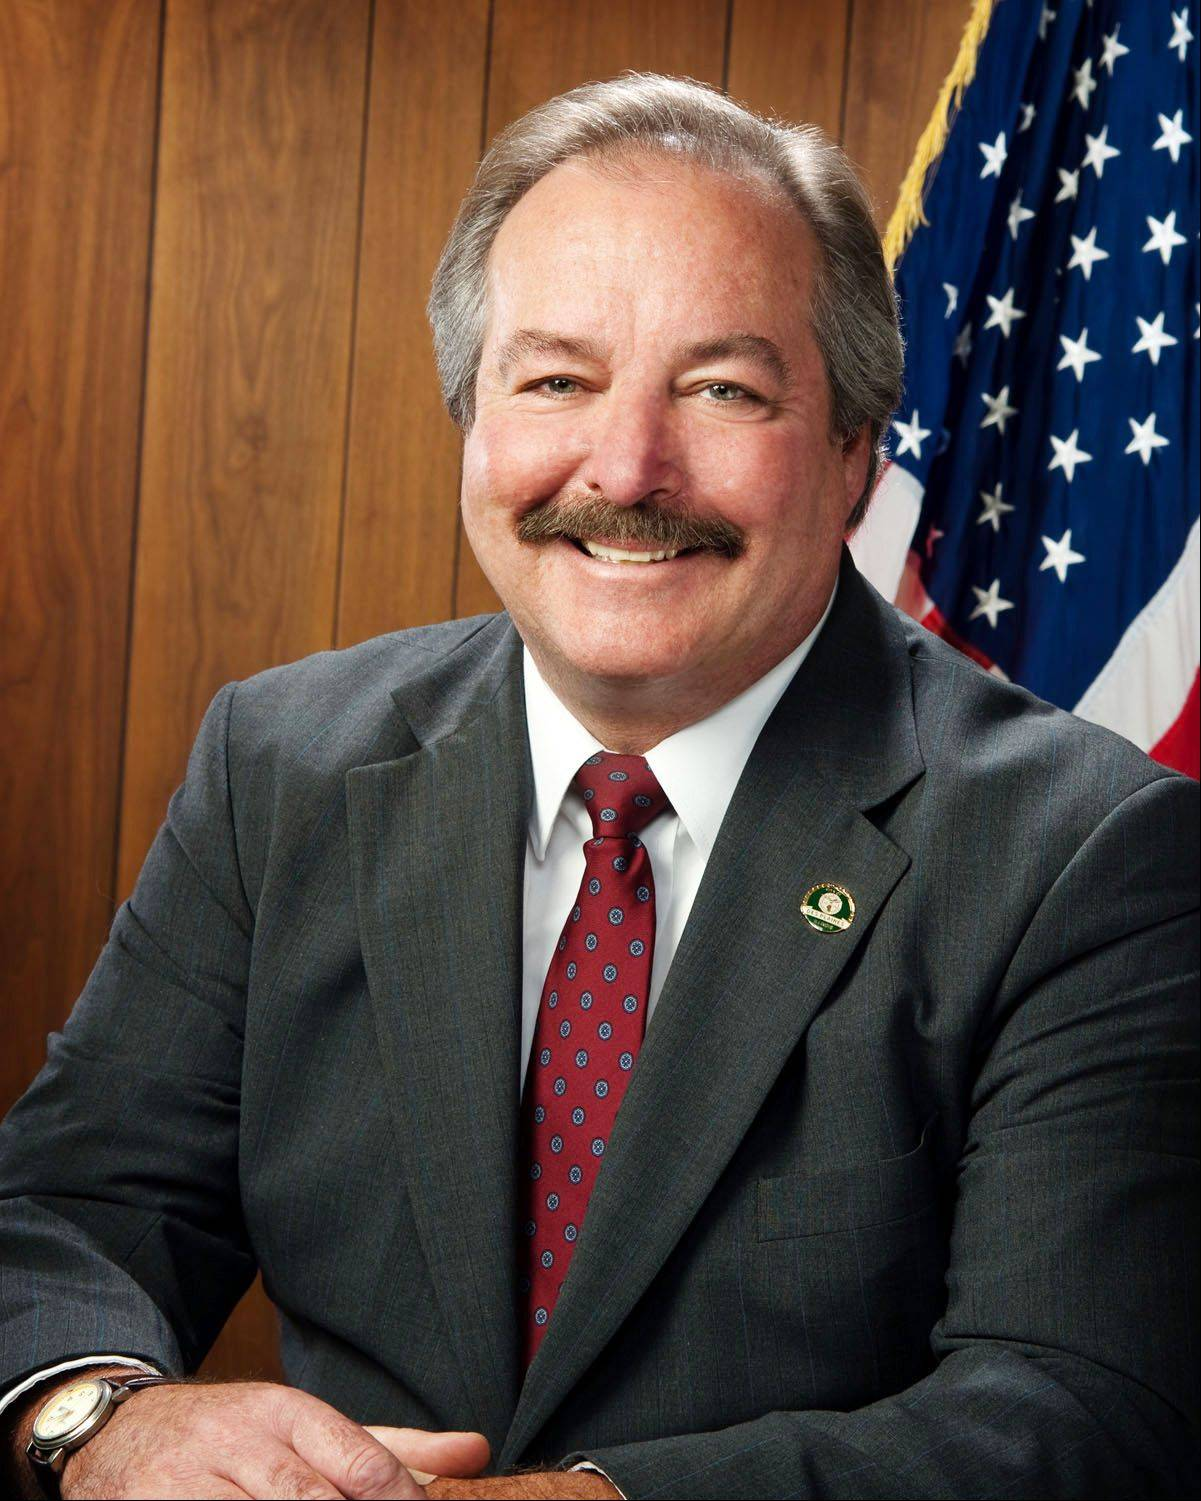 Walsten announces bid for Des Plaines mayor